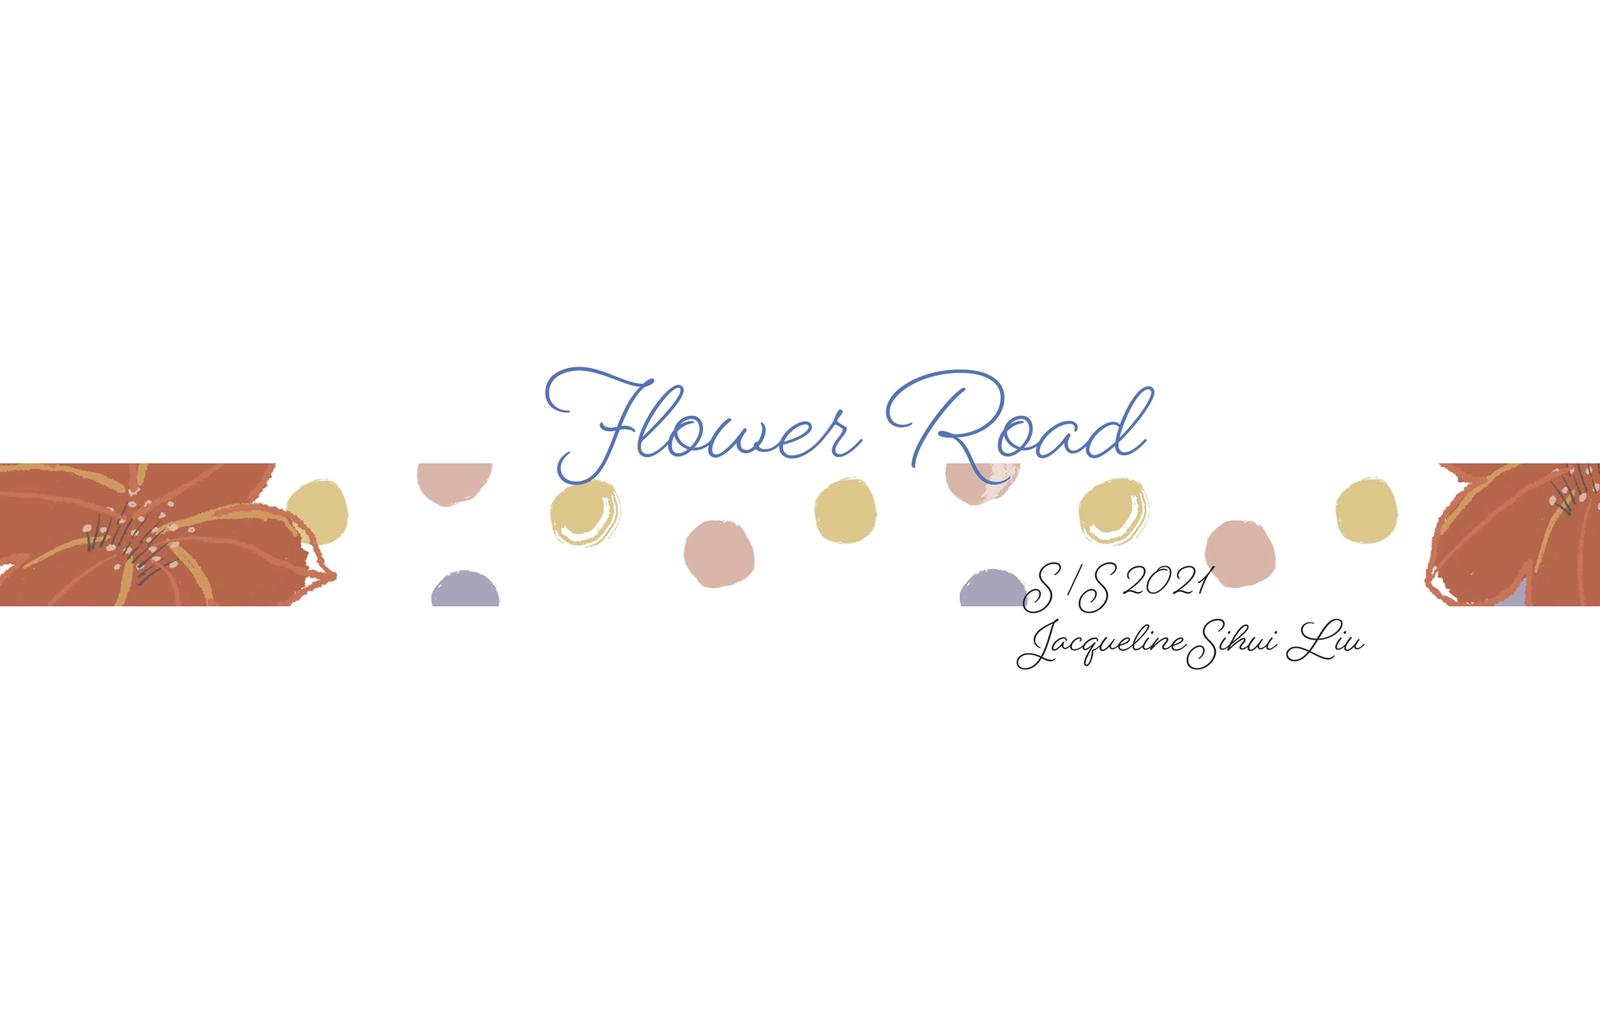 Flower Road Title page